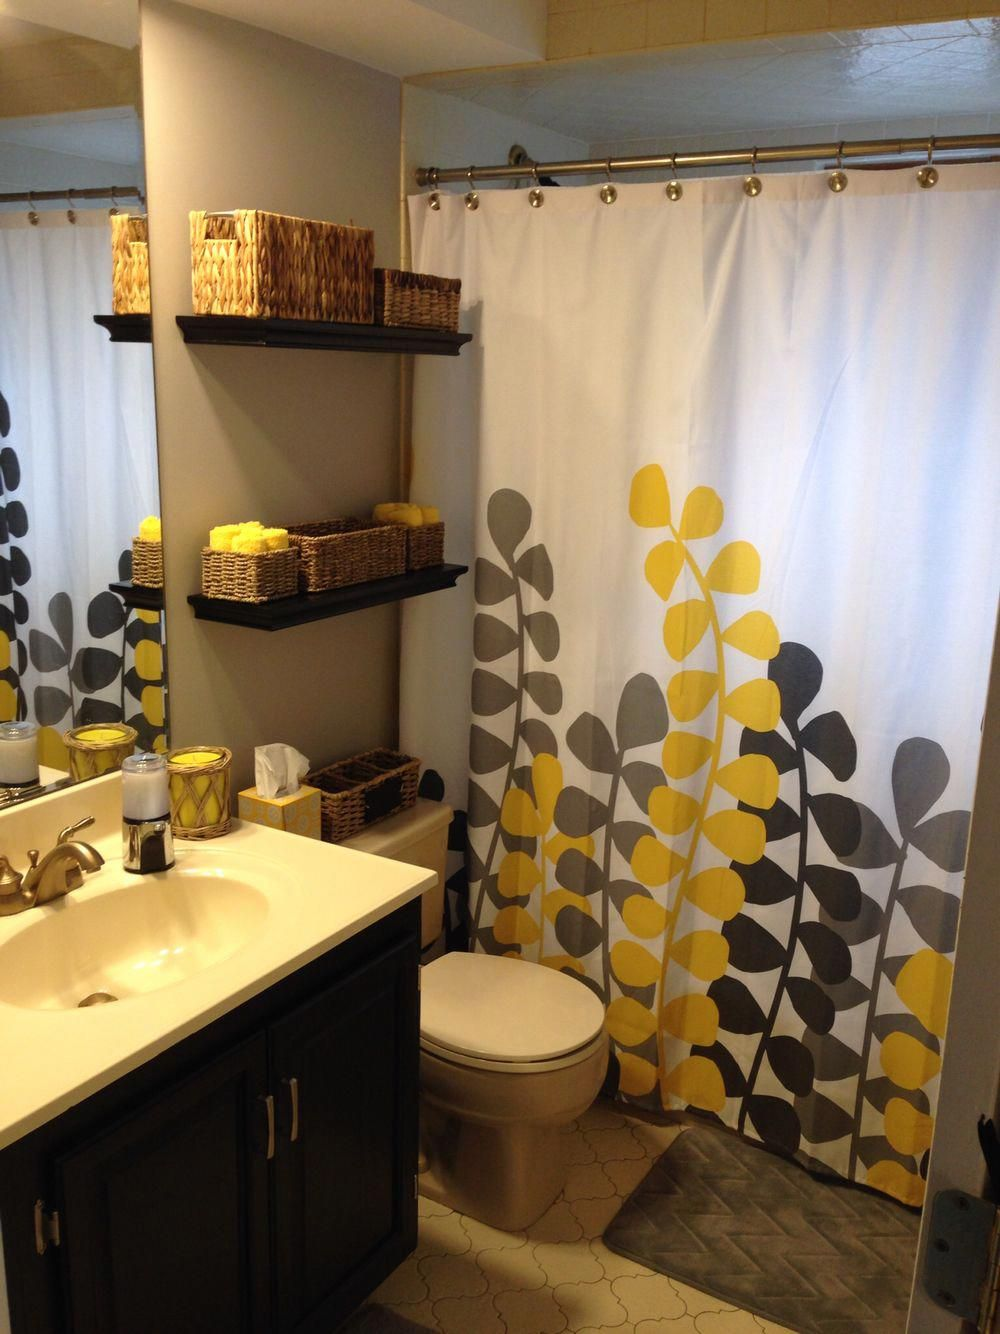 Decorating With Bathroom Towels Bathroom Decor Apartment Yellow